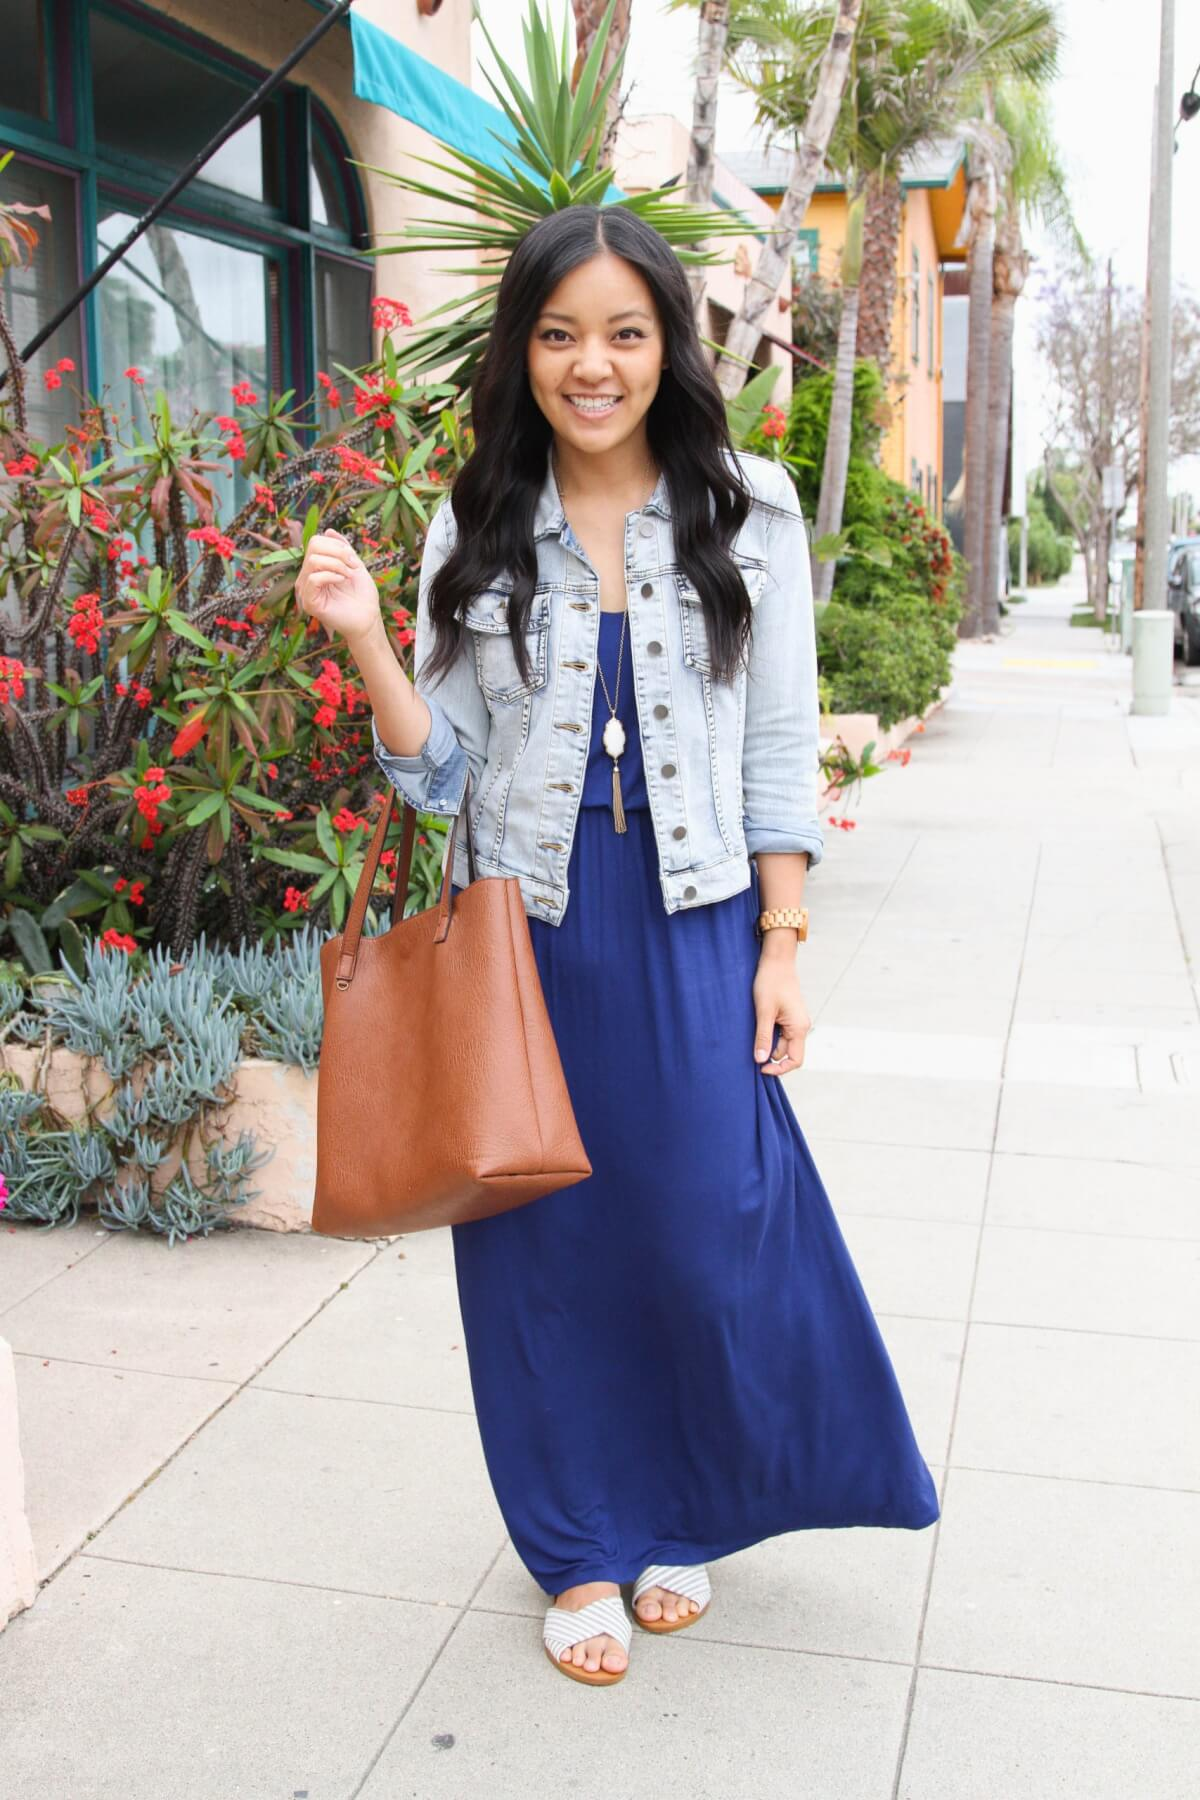 denim jacket outfit: denim jacket + blue dress + white sandals + pendant necklace + brown tote